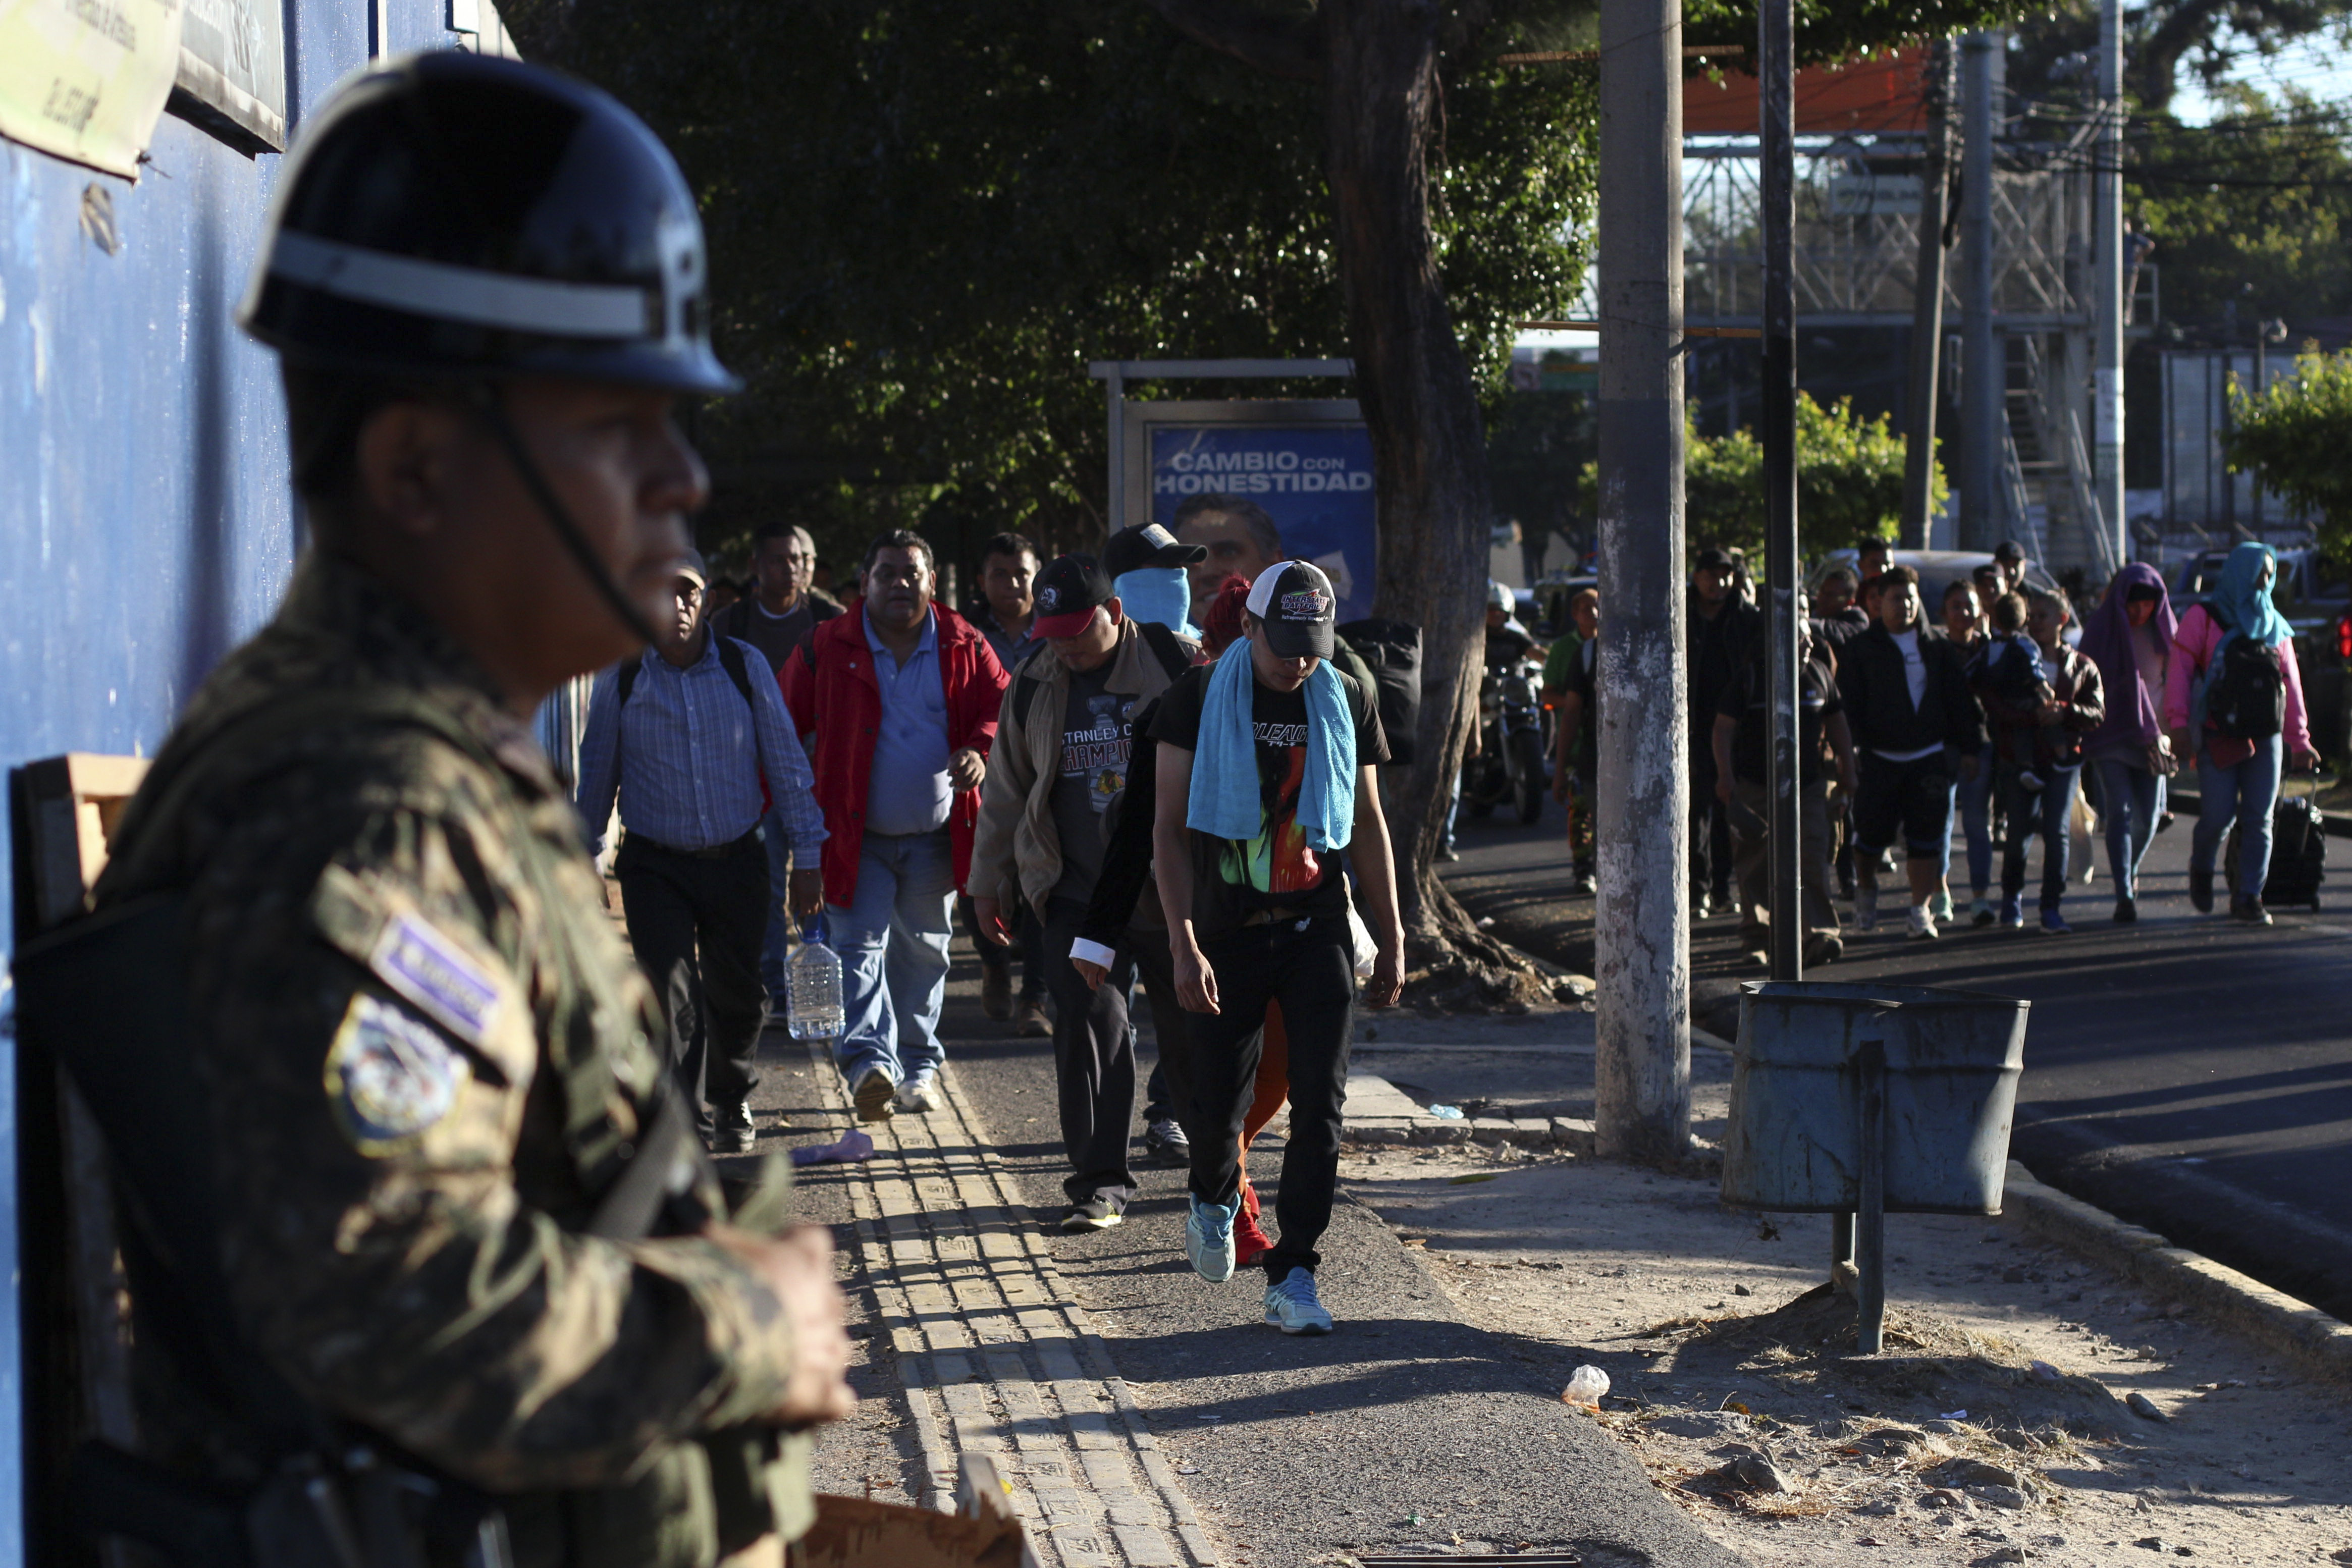 Police stand by as locals begin their journey north toward the U.S. border, during a migrant caravan passing through the capital of San Salvador, El Salvador, early Wednesday, Jan. 16, 2019. Migrants fleeing Central America's Northern Triangle region comprising Honduras, El Salvador and Guatemala routinely cite poverty and rampant gang violence as their motivation for leaving. (AP Photo/Salvador Melendez)